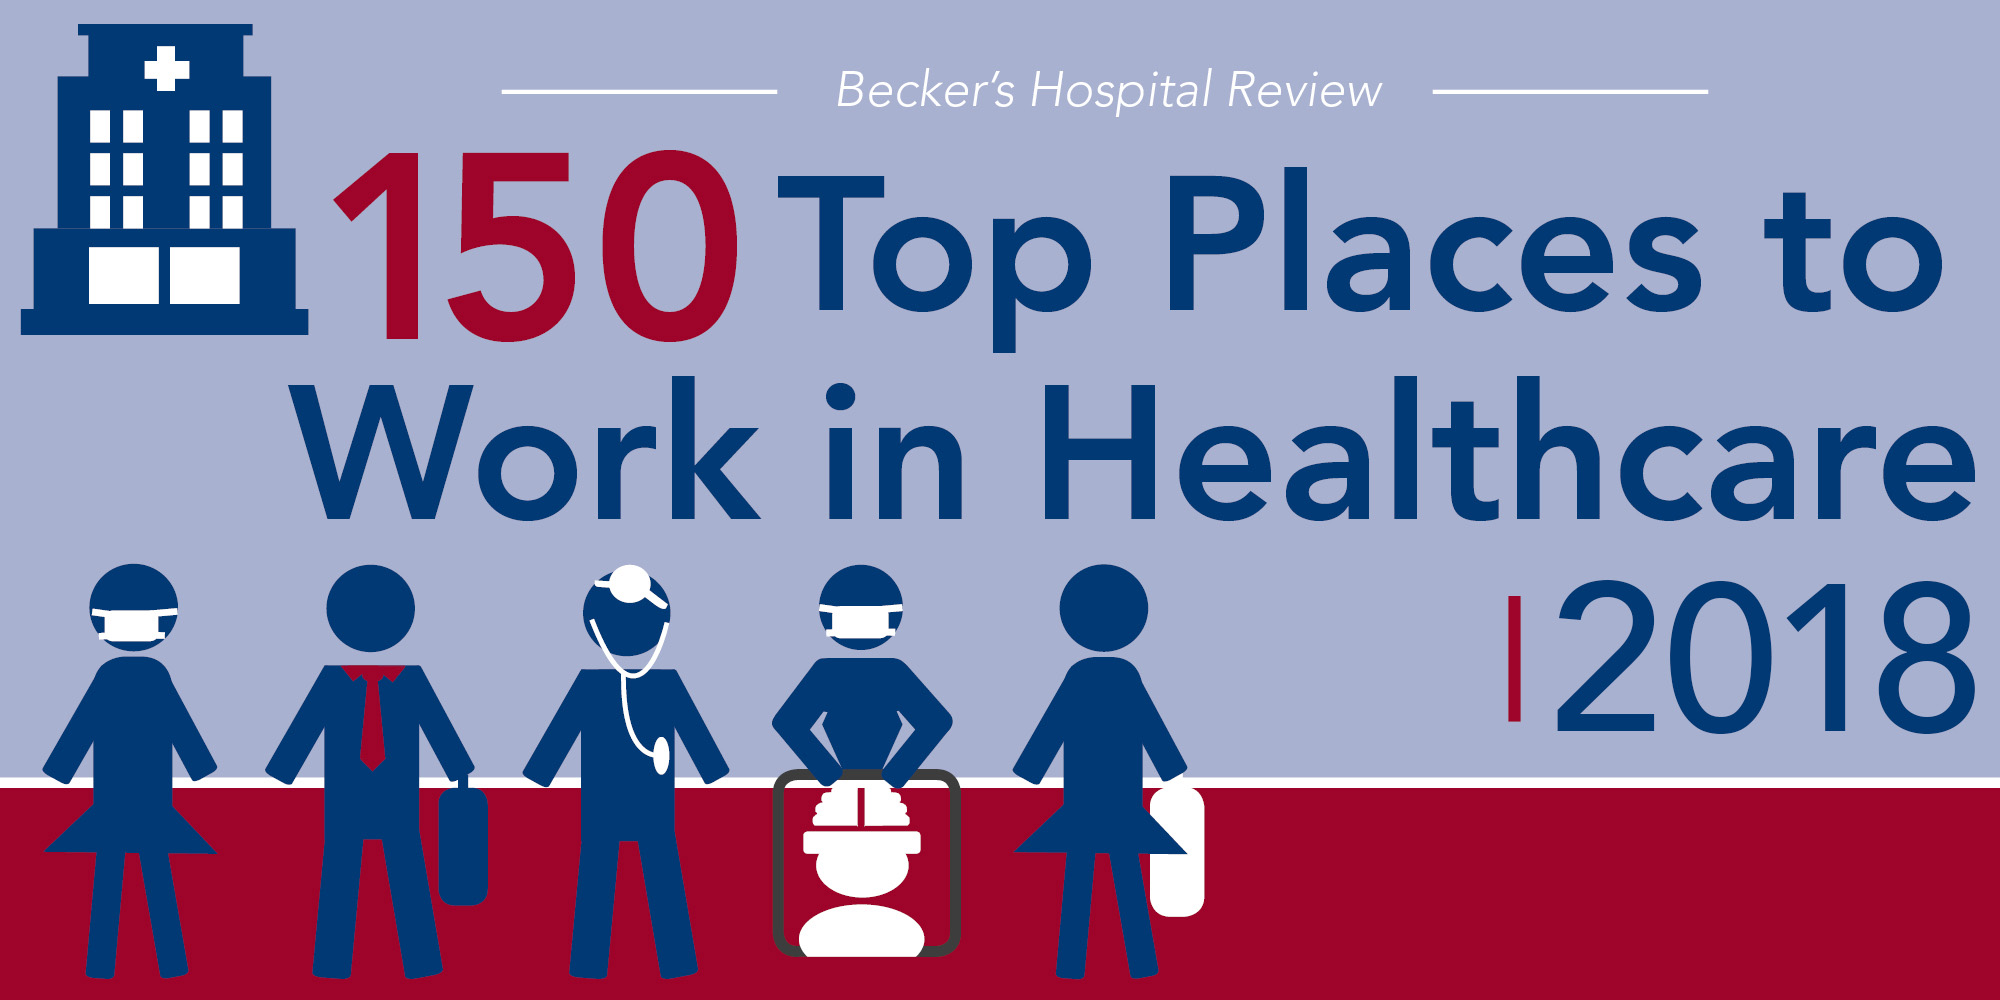 """Thompson Health Makes List of """"Top Places to Work in Healthcare"""""""